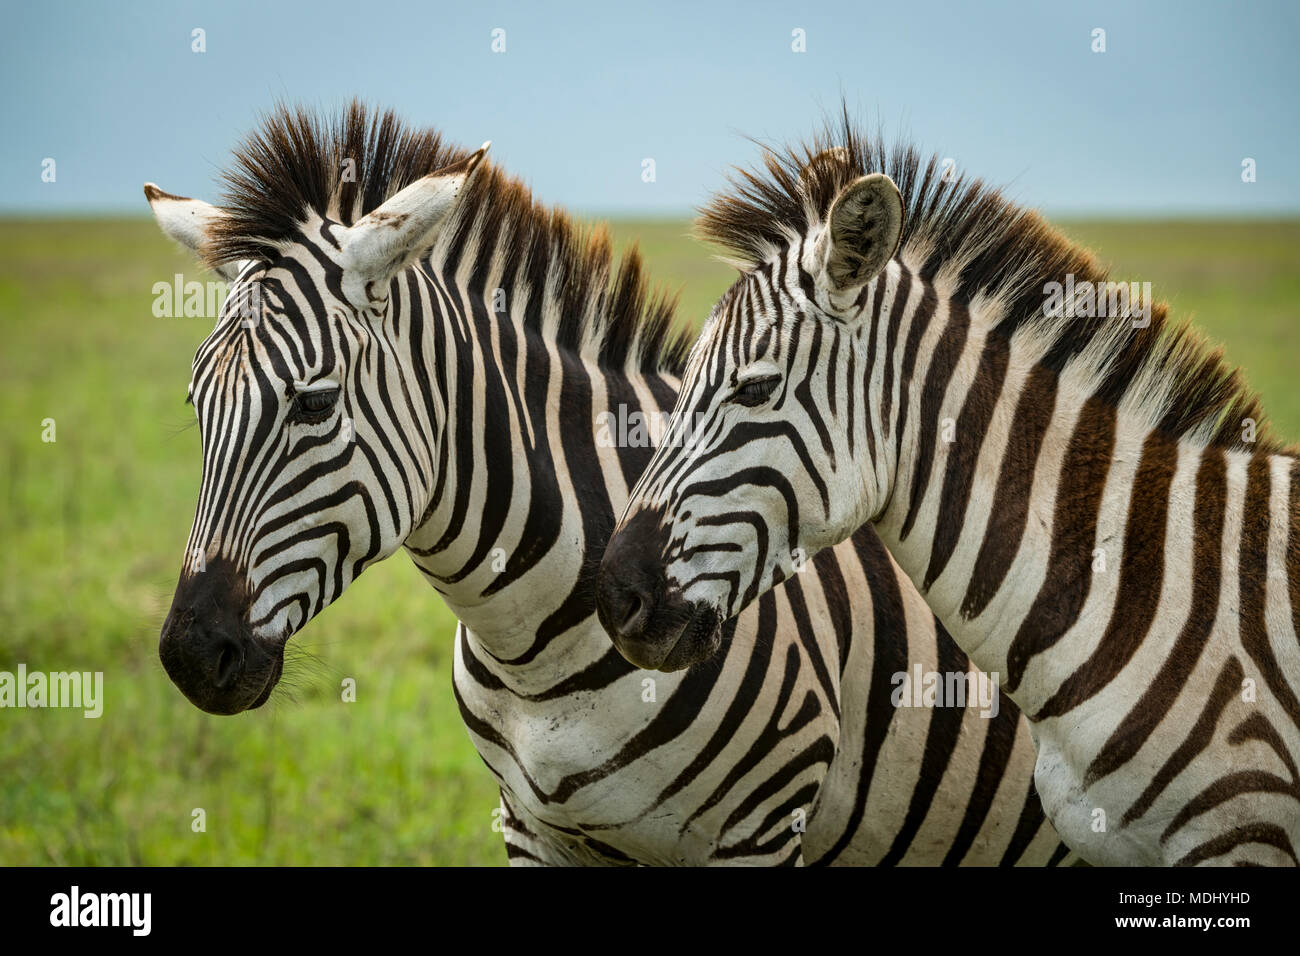 Close-up of two plains zebra (Equus quagga) standing side-by-side, Ngorongoro Crater; Tanzania - Stock Image